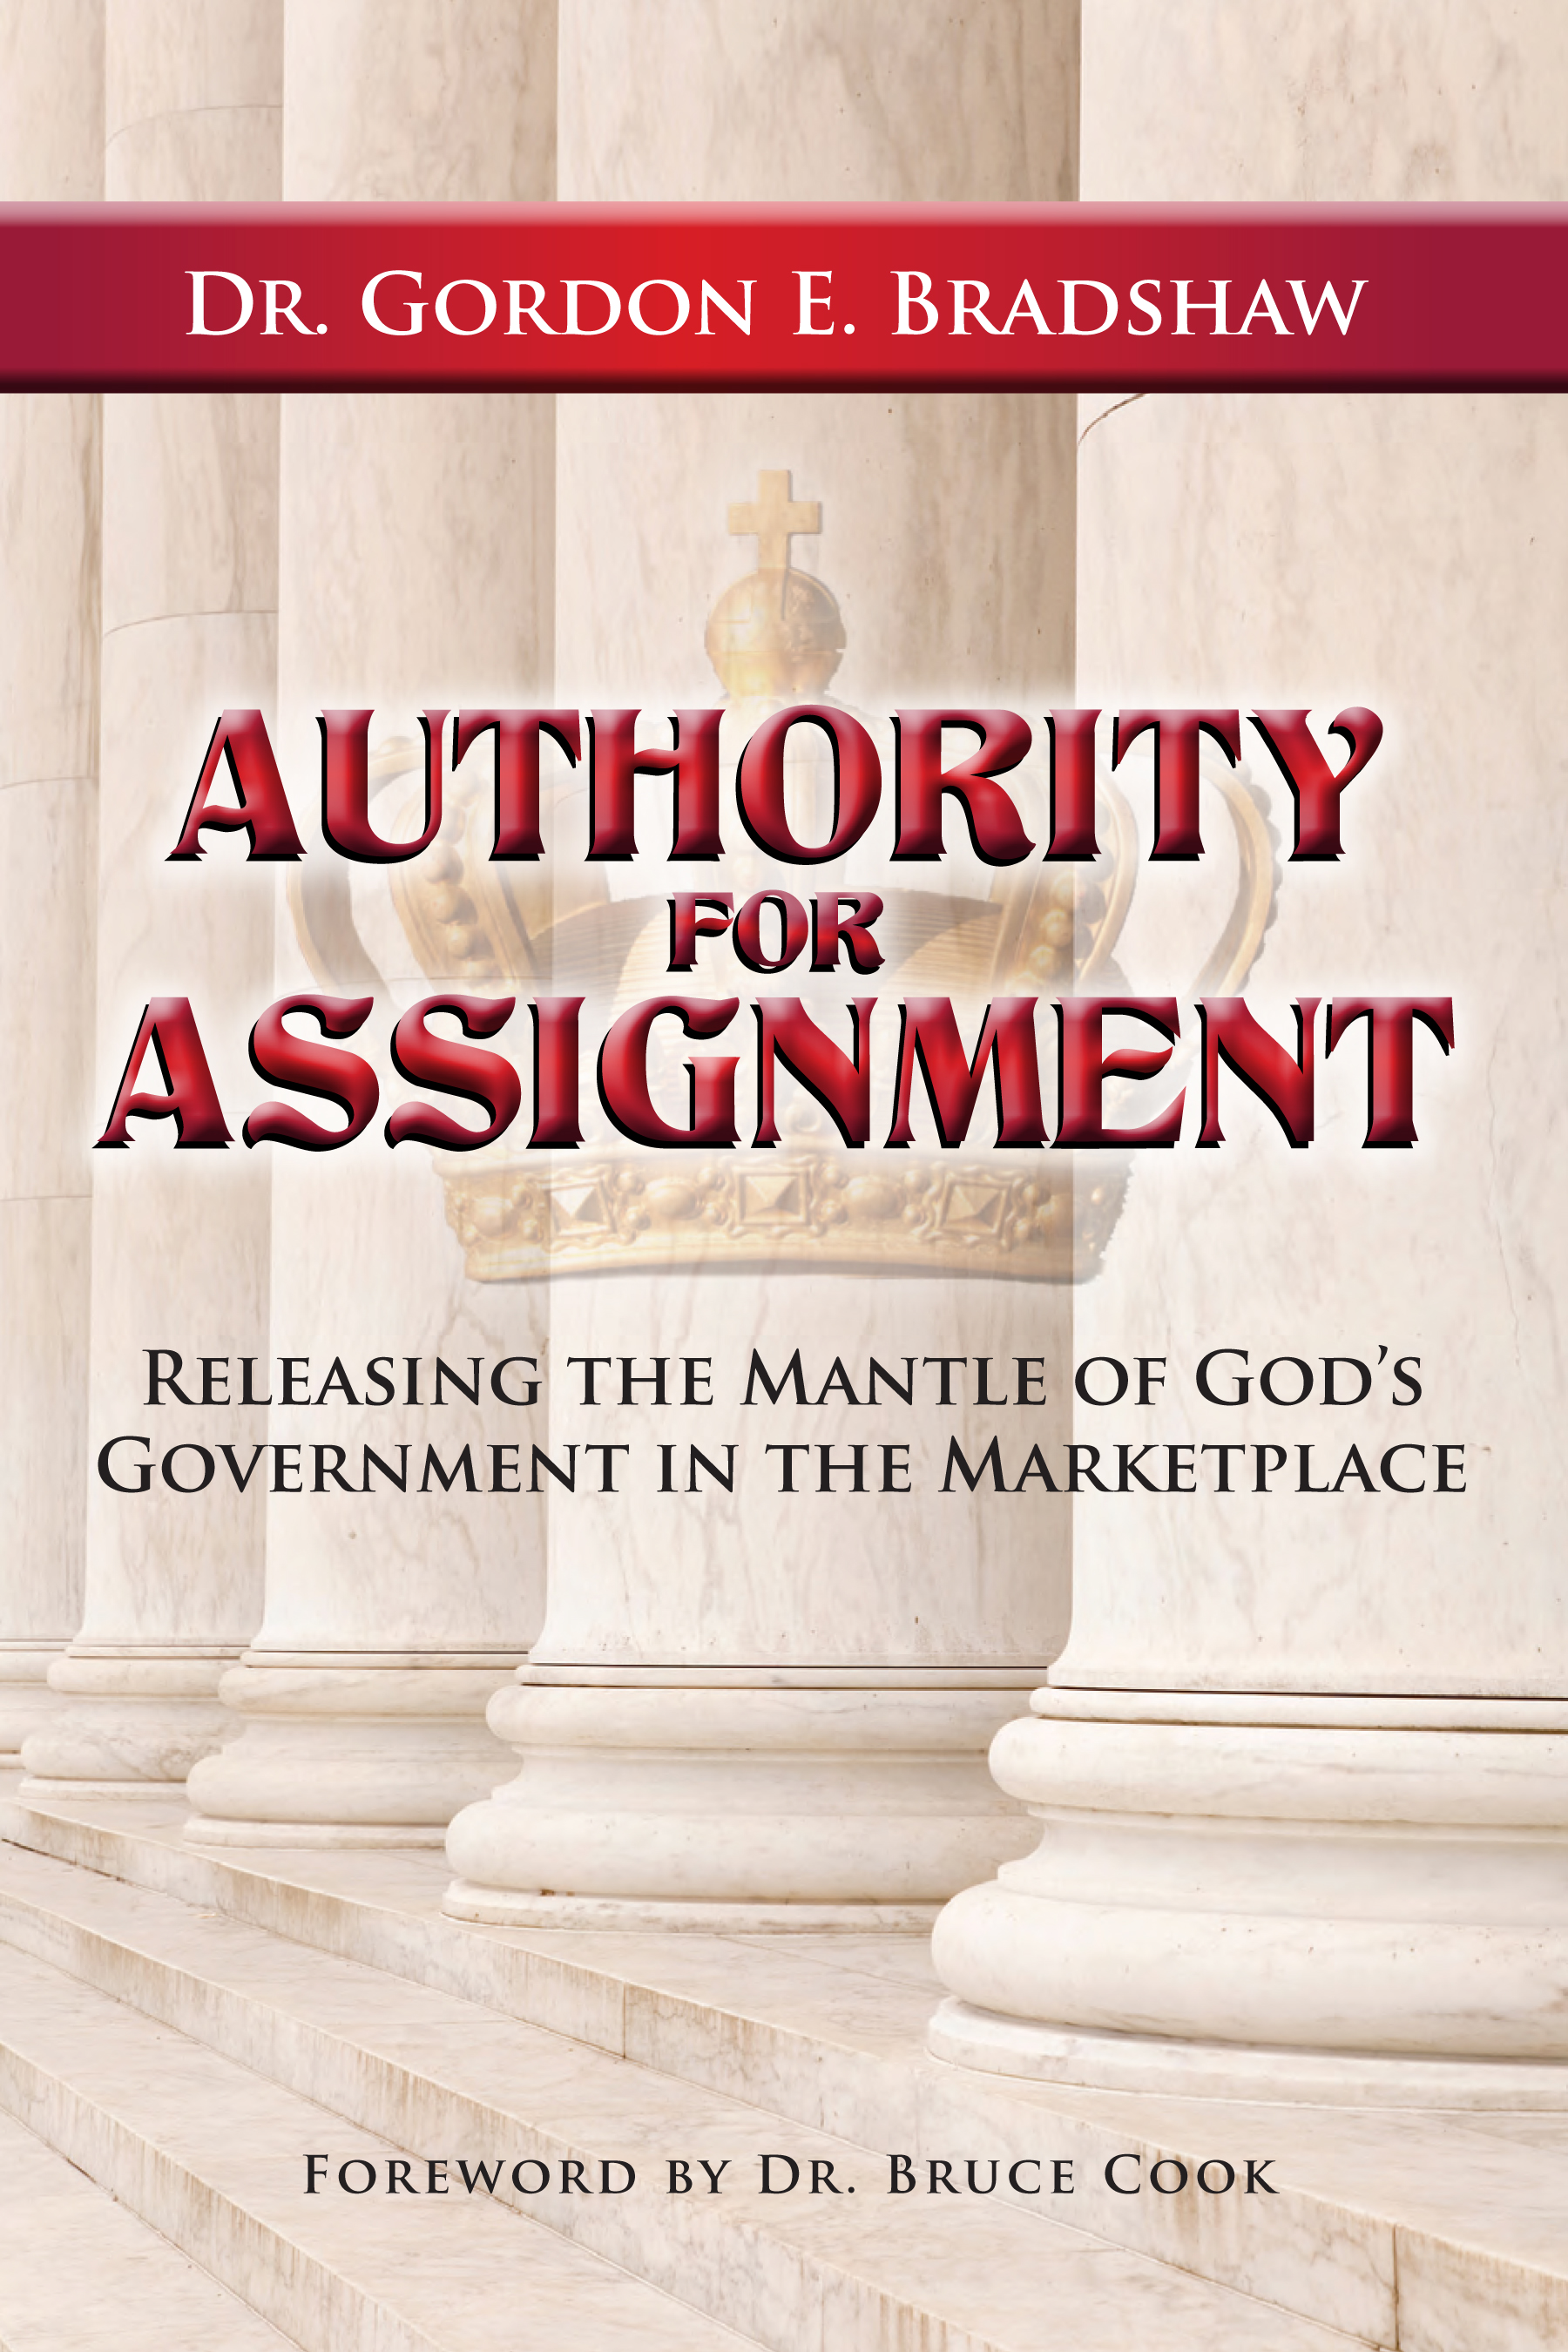 Authority for Assignment - Releasing the Mantle of God's Government in the Marketplace